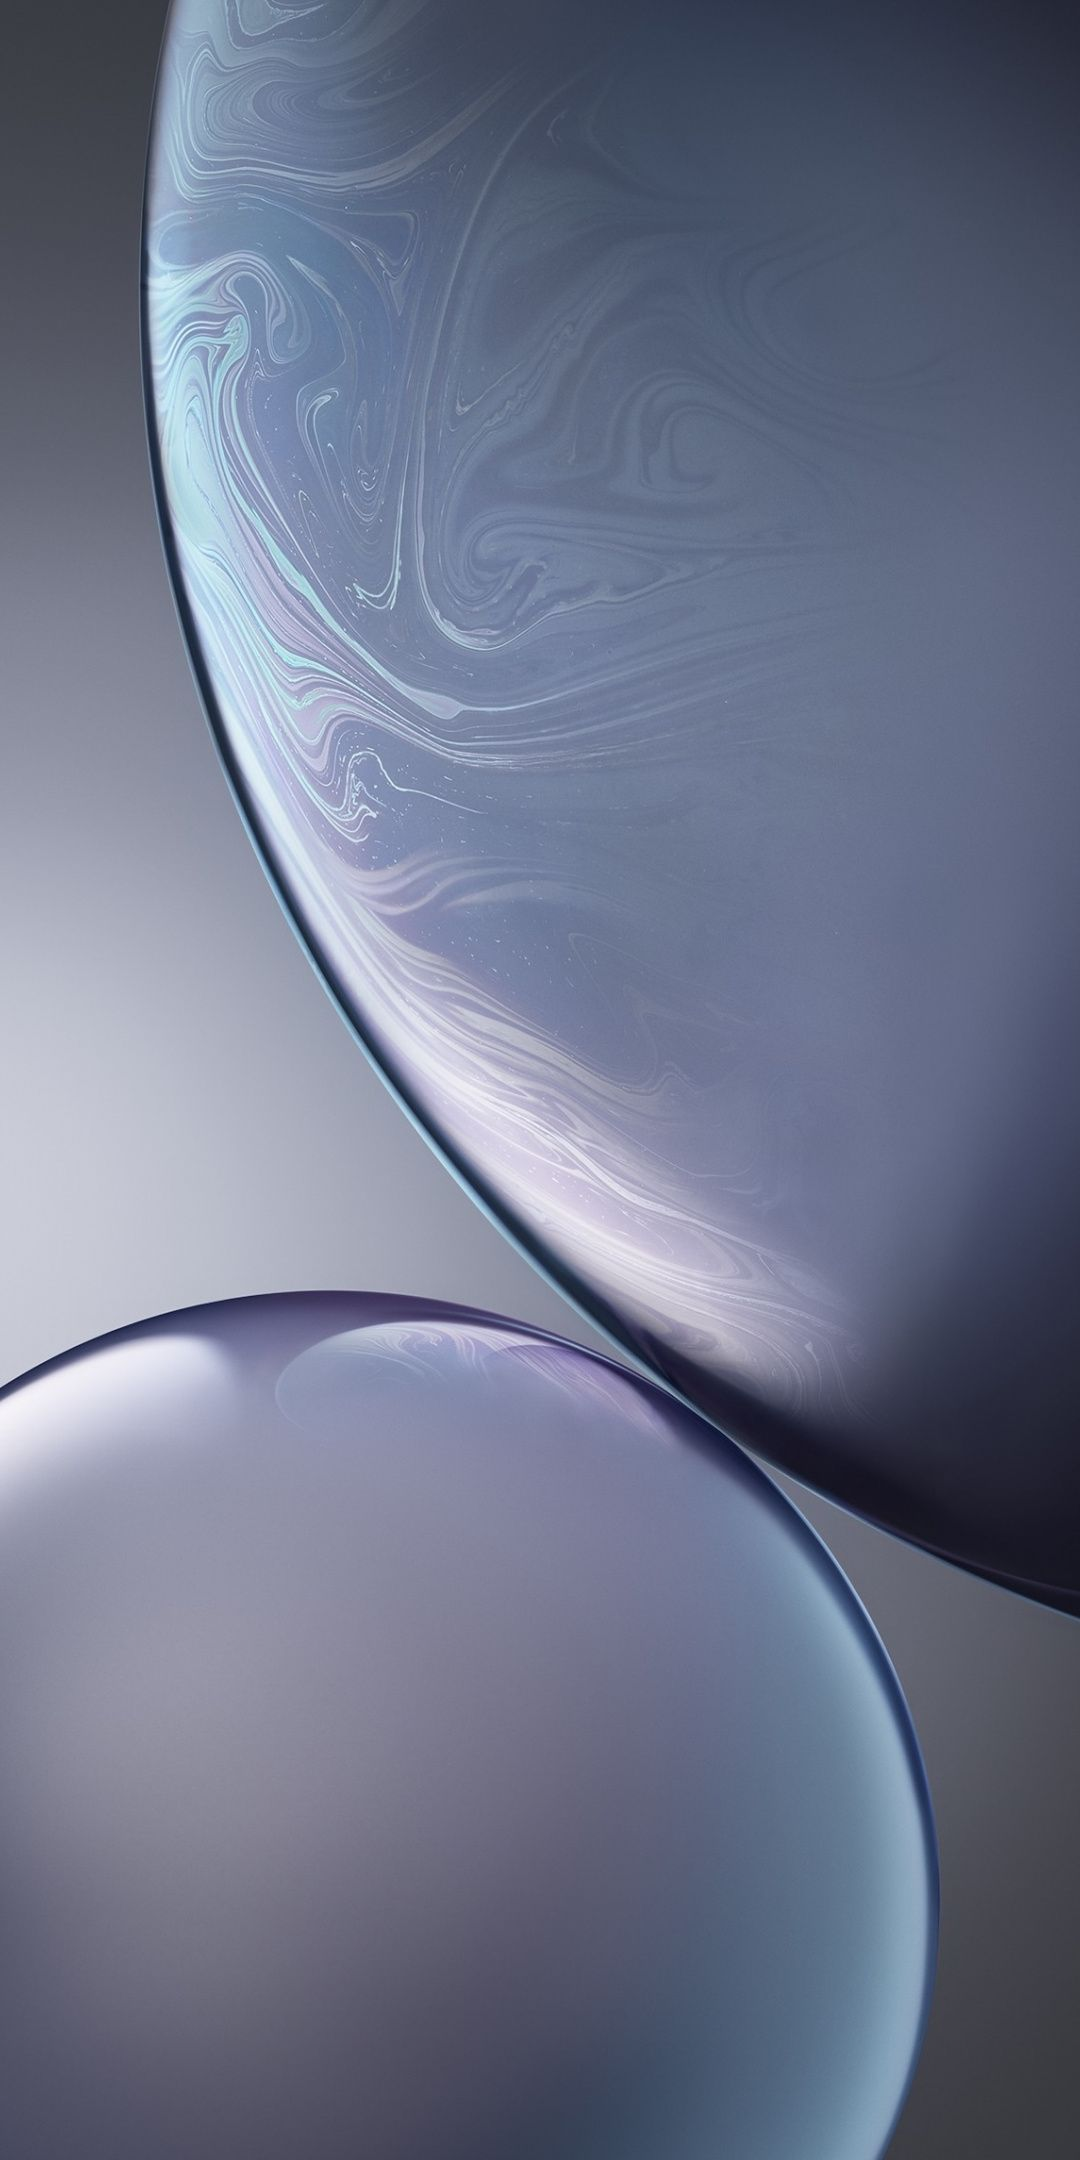 Bubbles Gray Iphone Xr Ios 12 Surface 1080x2160 Wallpaper Original Iphone Wallpaper Apple Wallpaper Iphone Iphone Wallpaper Ios